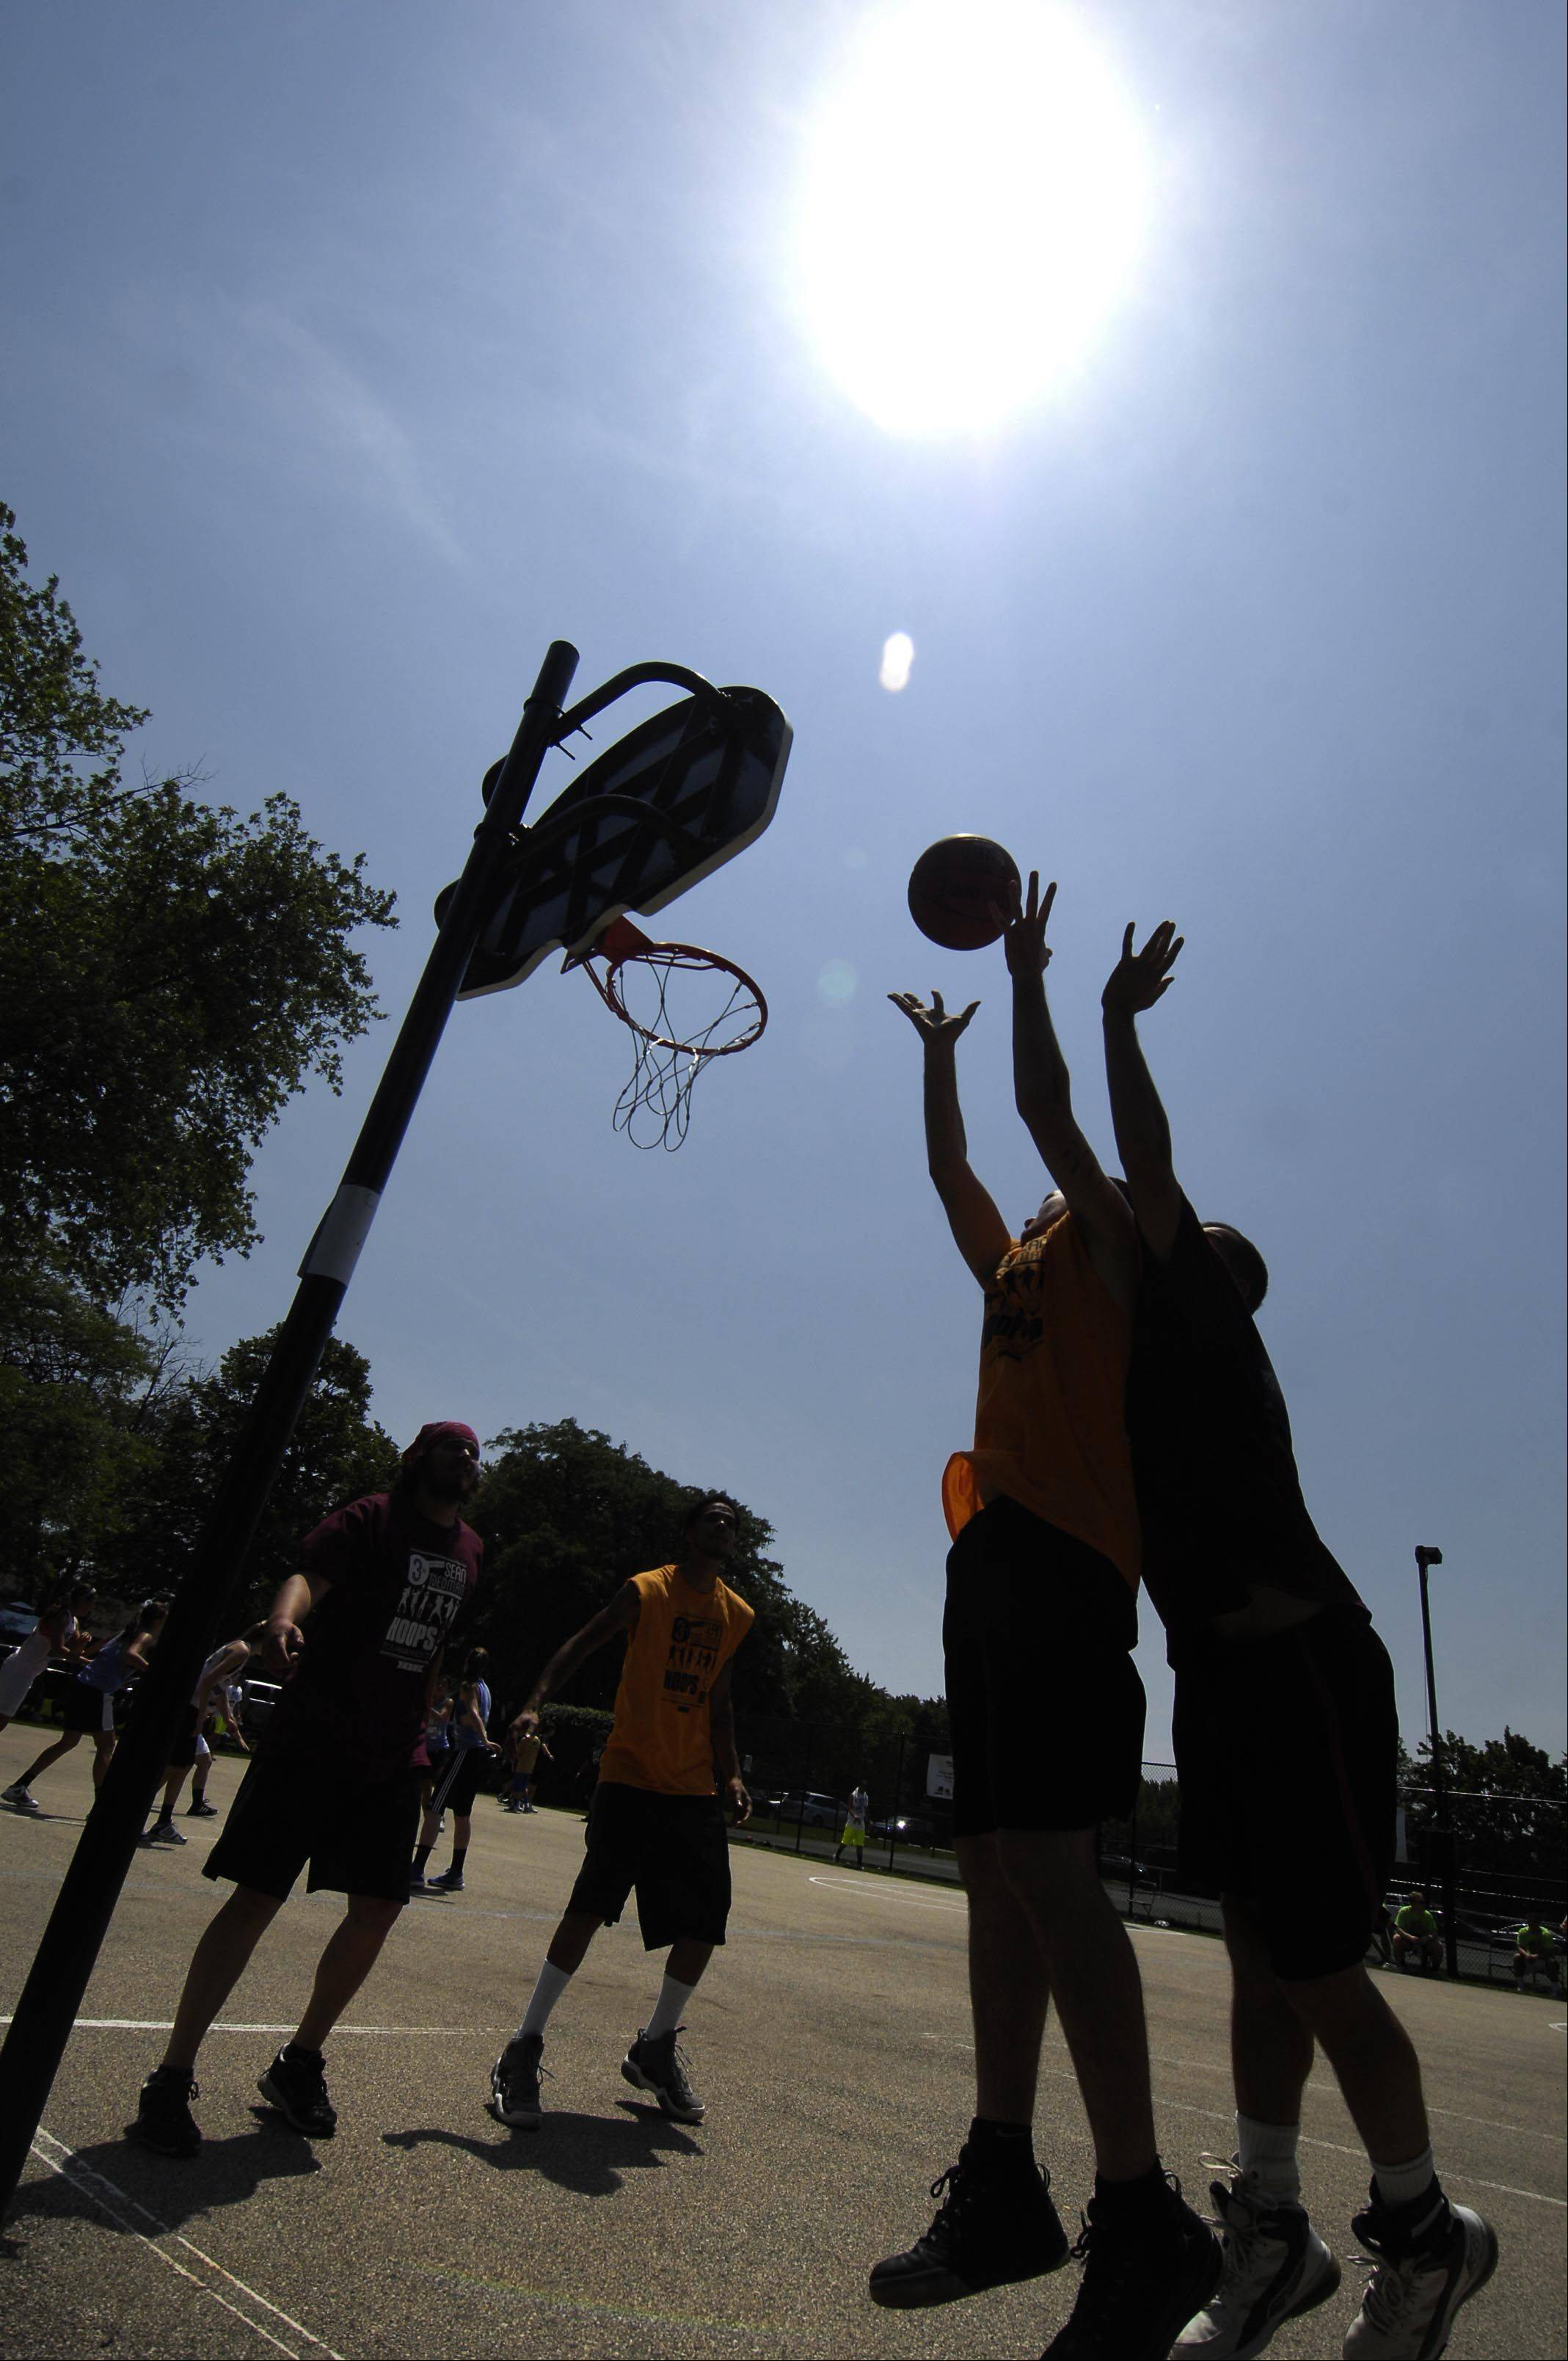 Players compete under the hot sun Sunday at the Sean Toedman Memorial 3-on-3 basketball tournament at Lions Park in East Dundee.